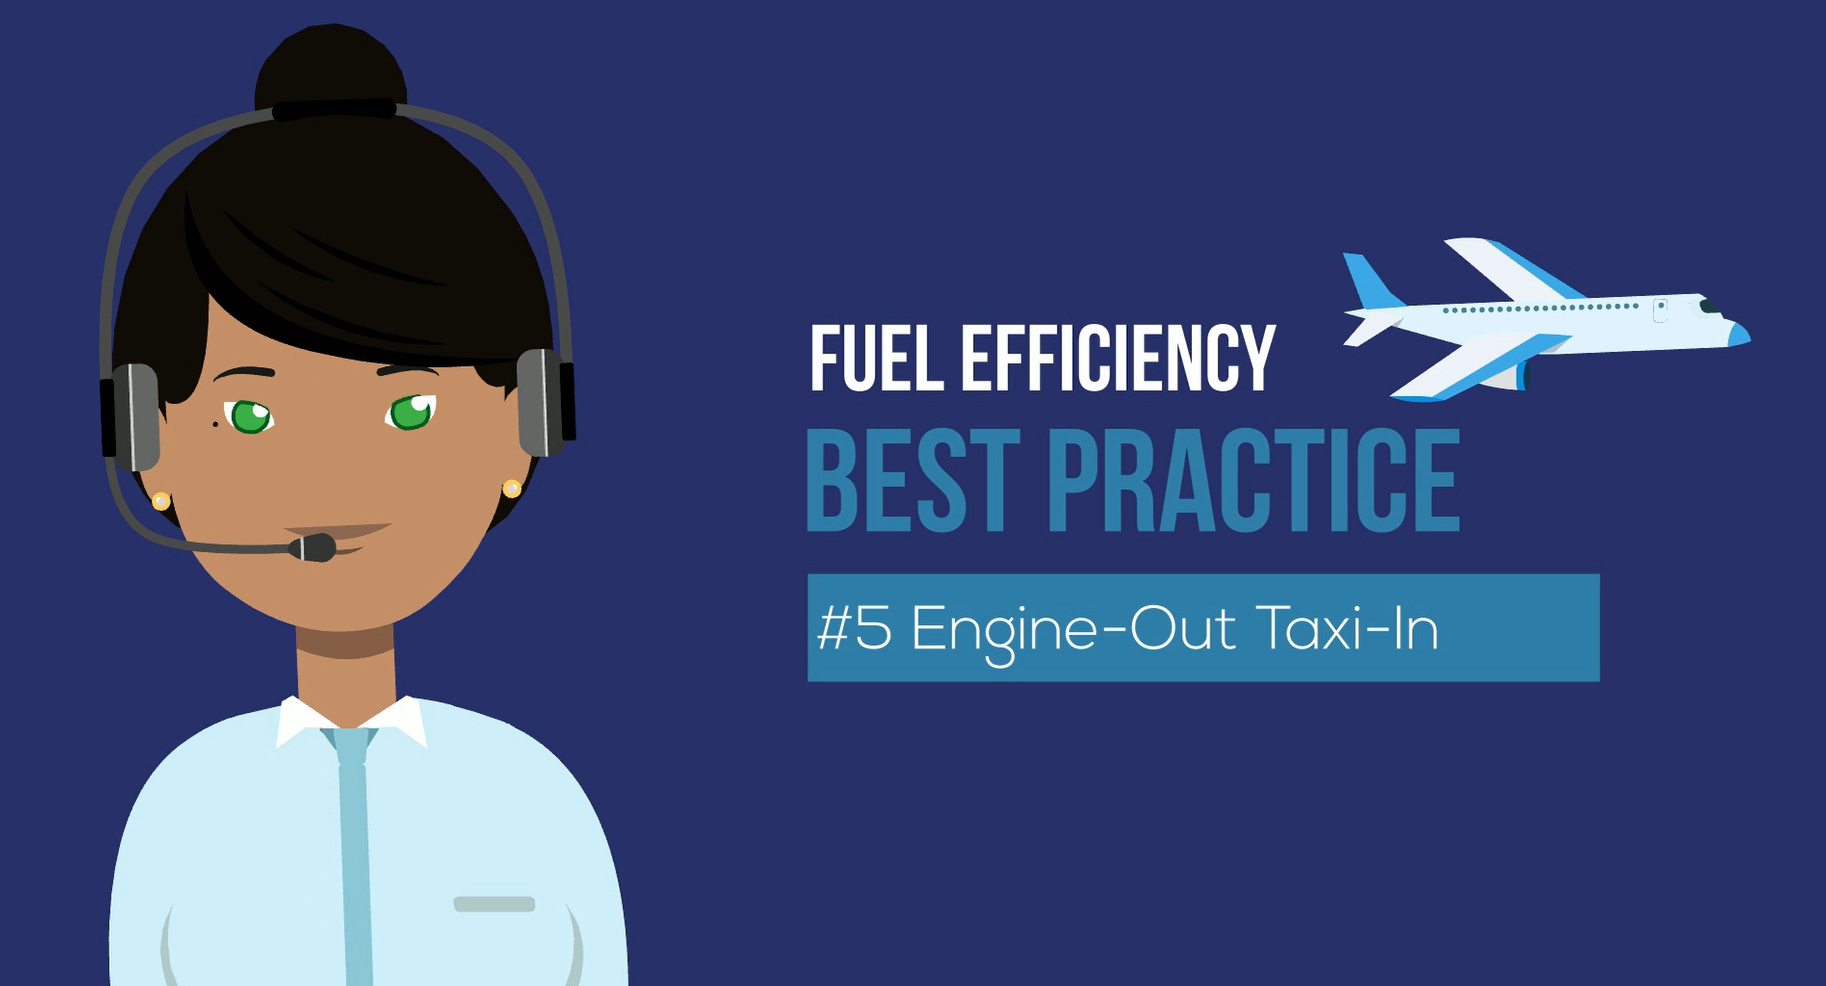 Engine out taxi in fuel efficiency best practice